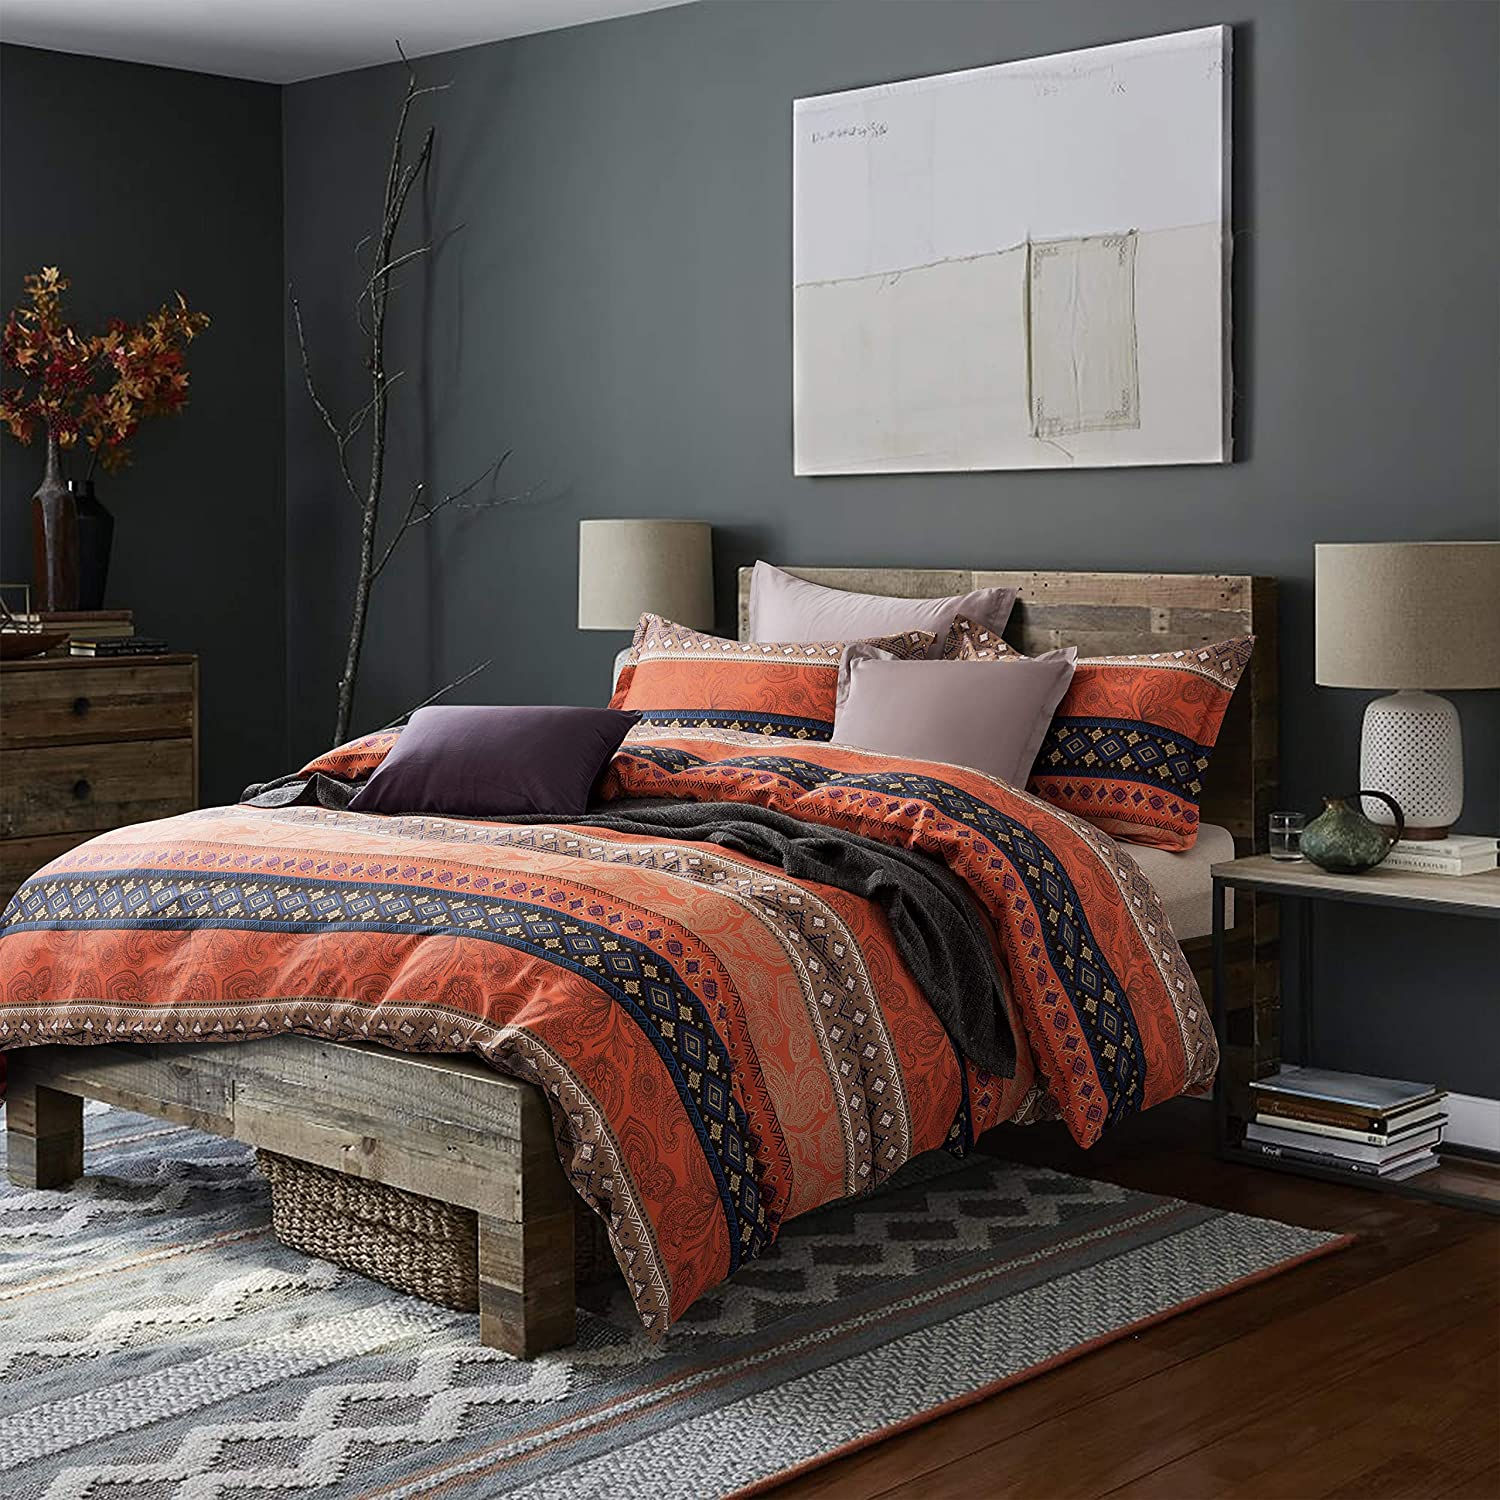 Bohemian Duvet Cover Striped Boho Reversible Max 79% OFF Southwestern Ethnic Super sale period limited